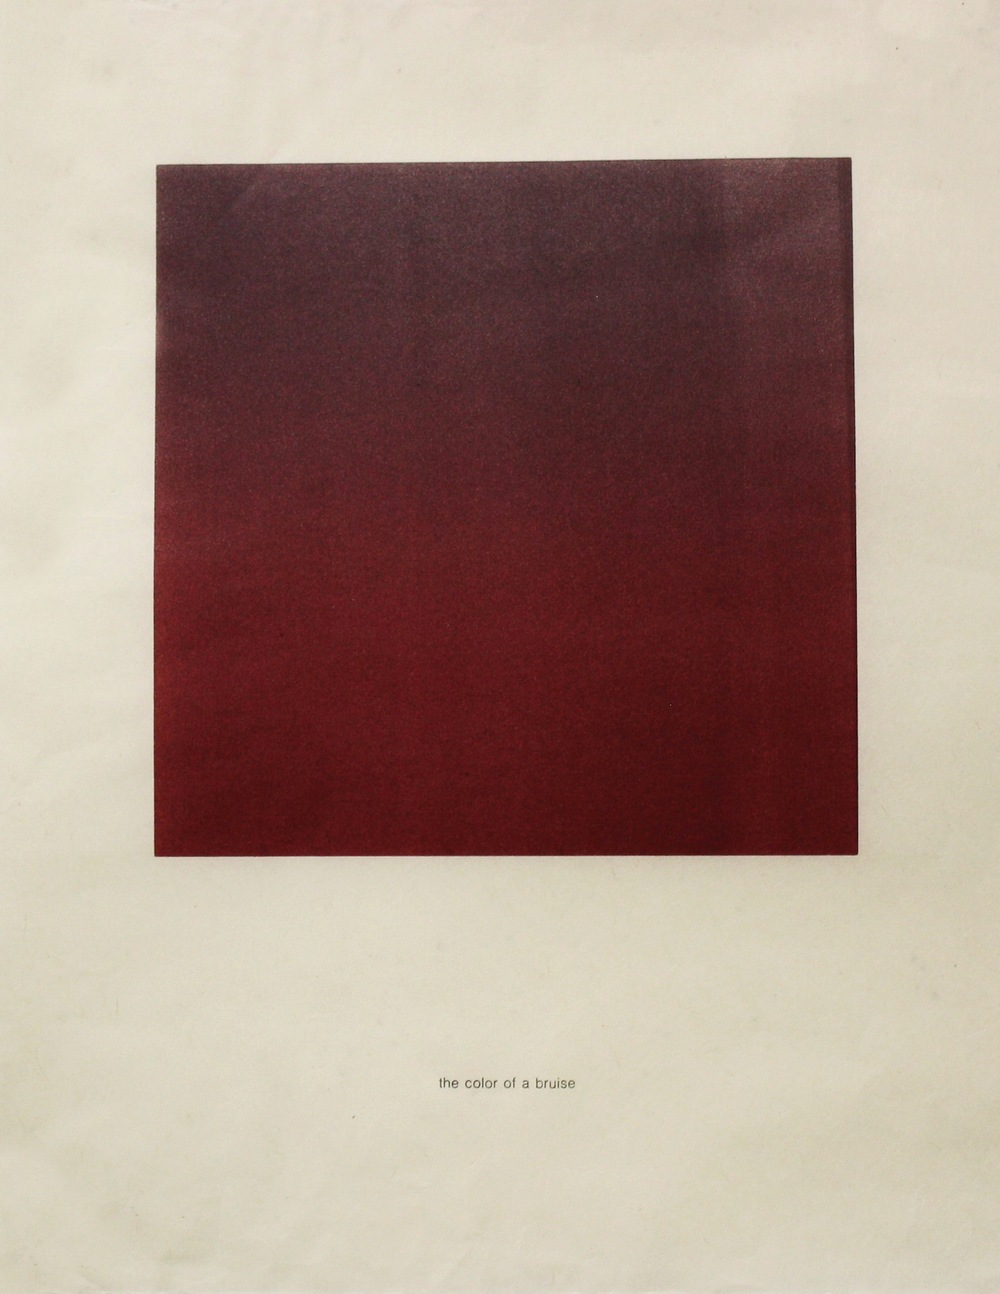 The Color of Fear: Bruise